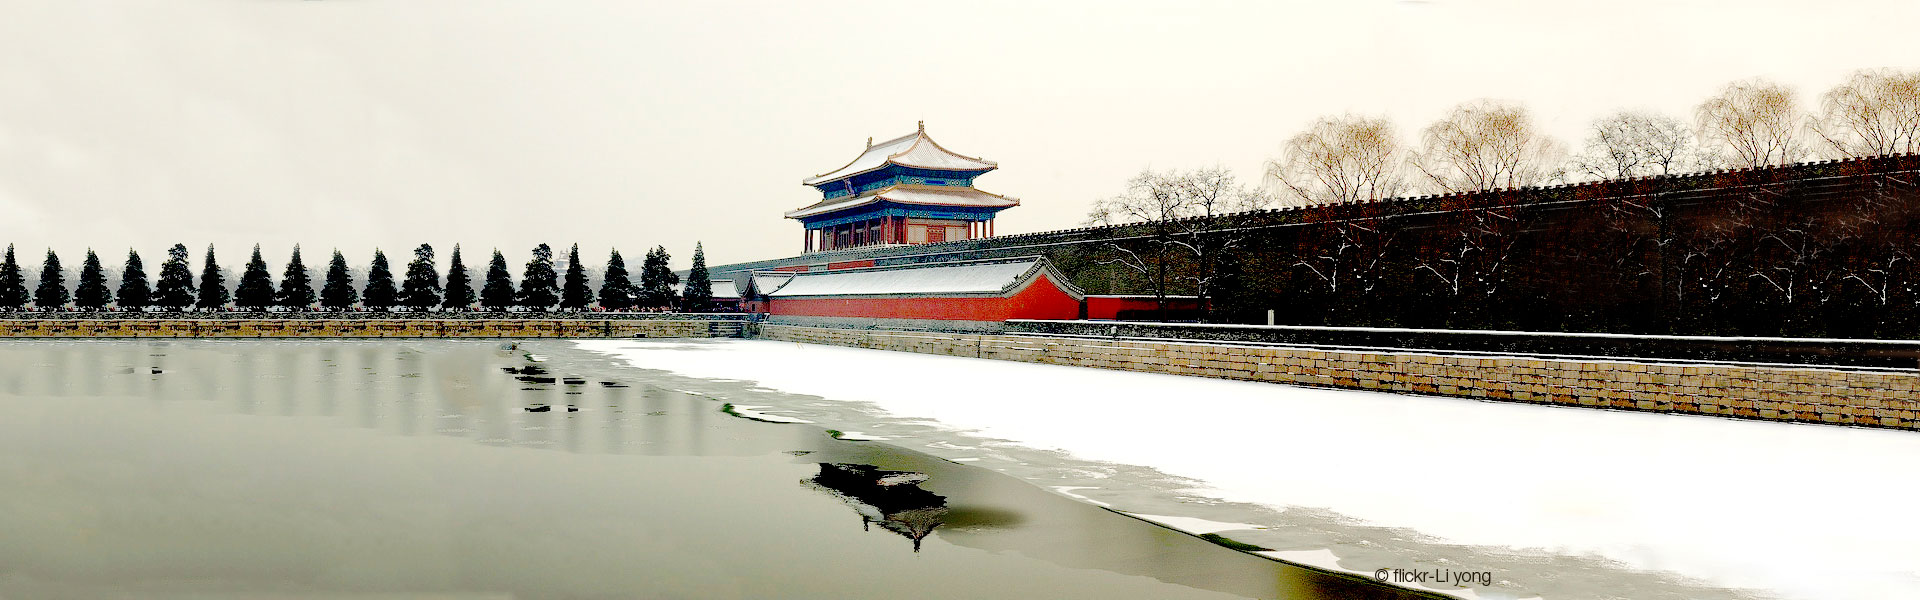 Save Big on China Tours this Christmas & New Year